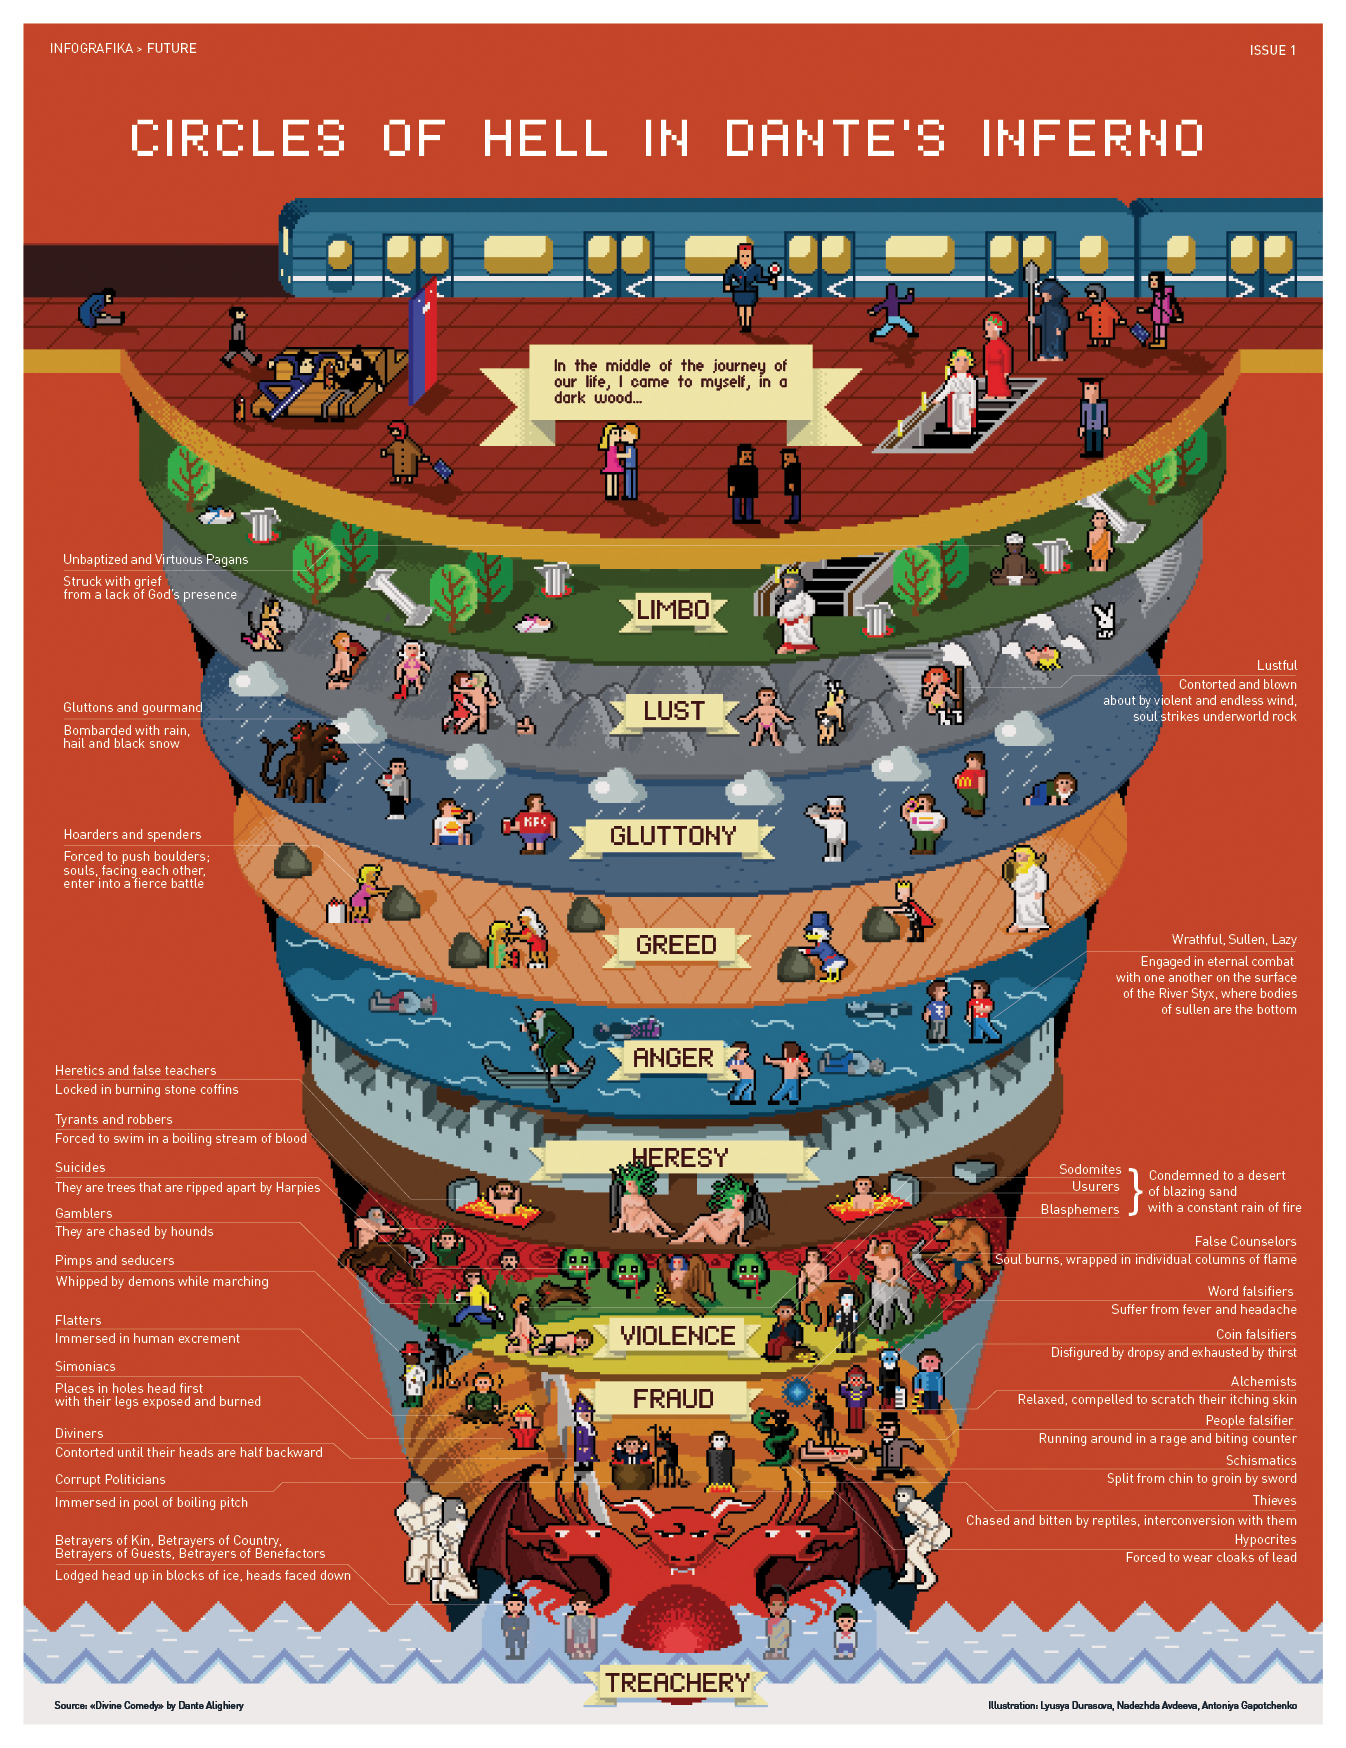 CIRCLES OF HELL IN DANTE'S INFERNO   Visual.ly